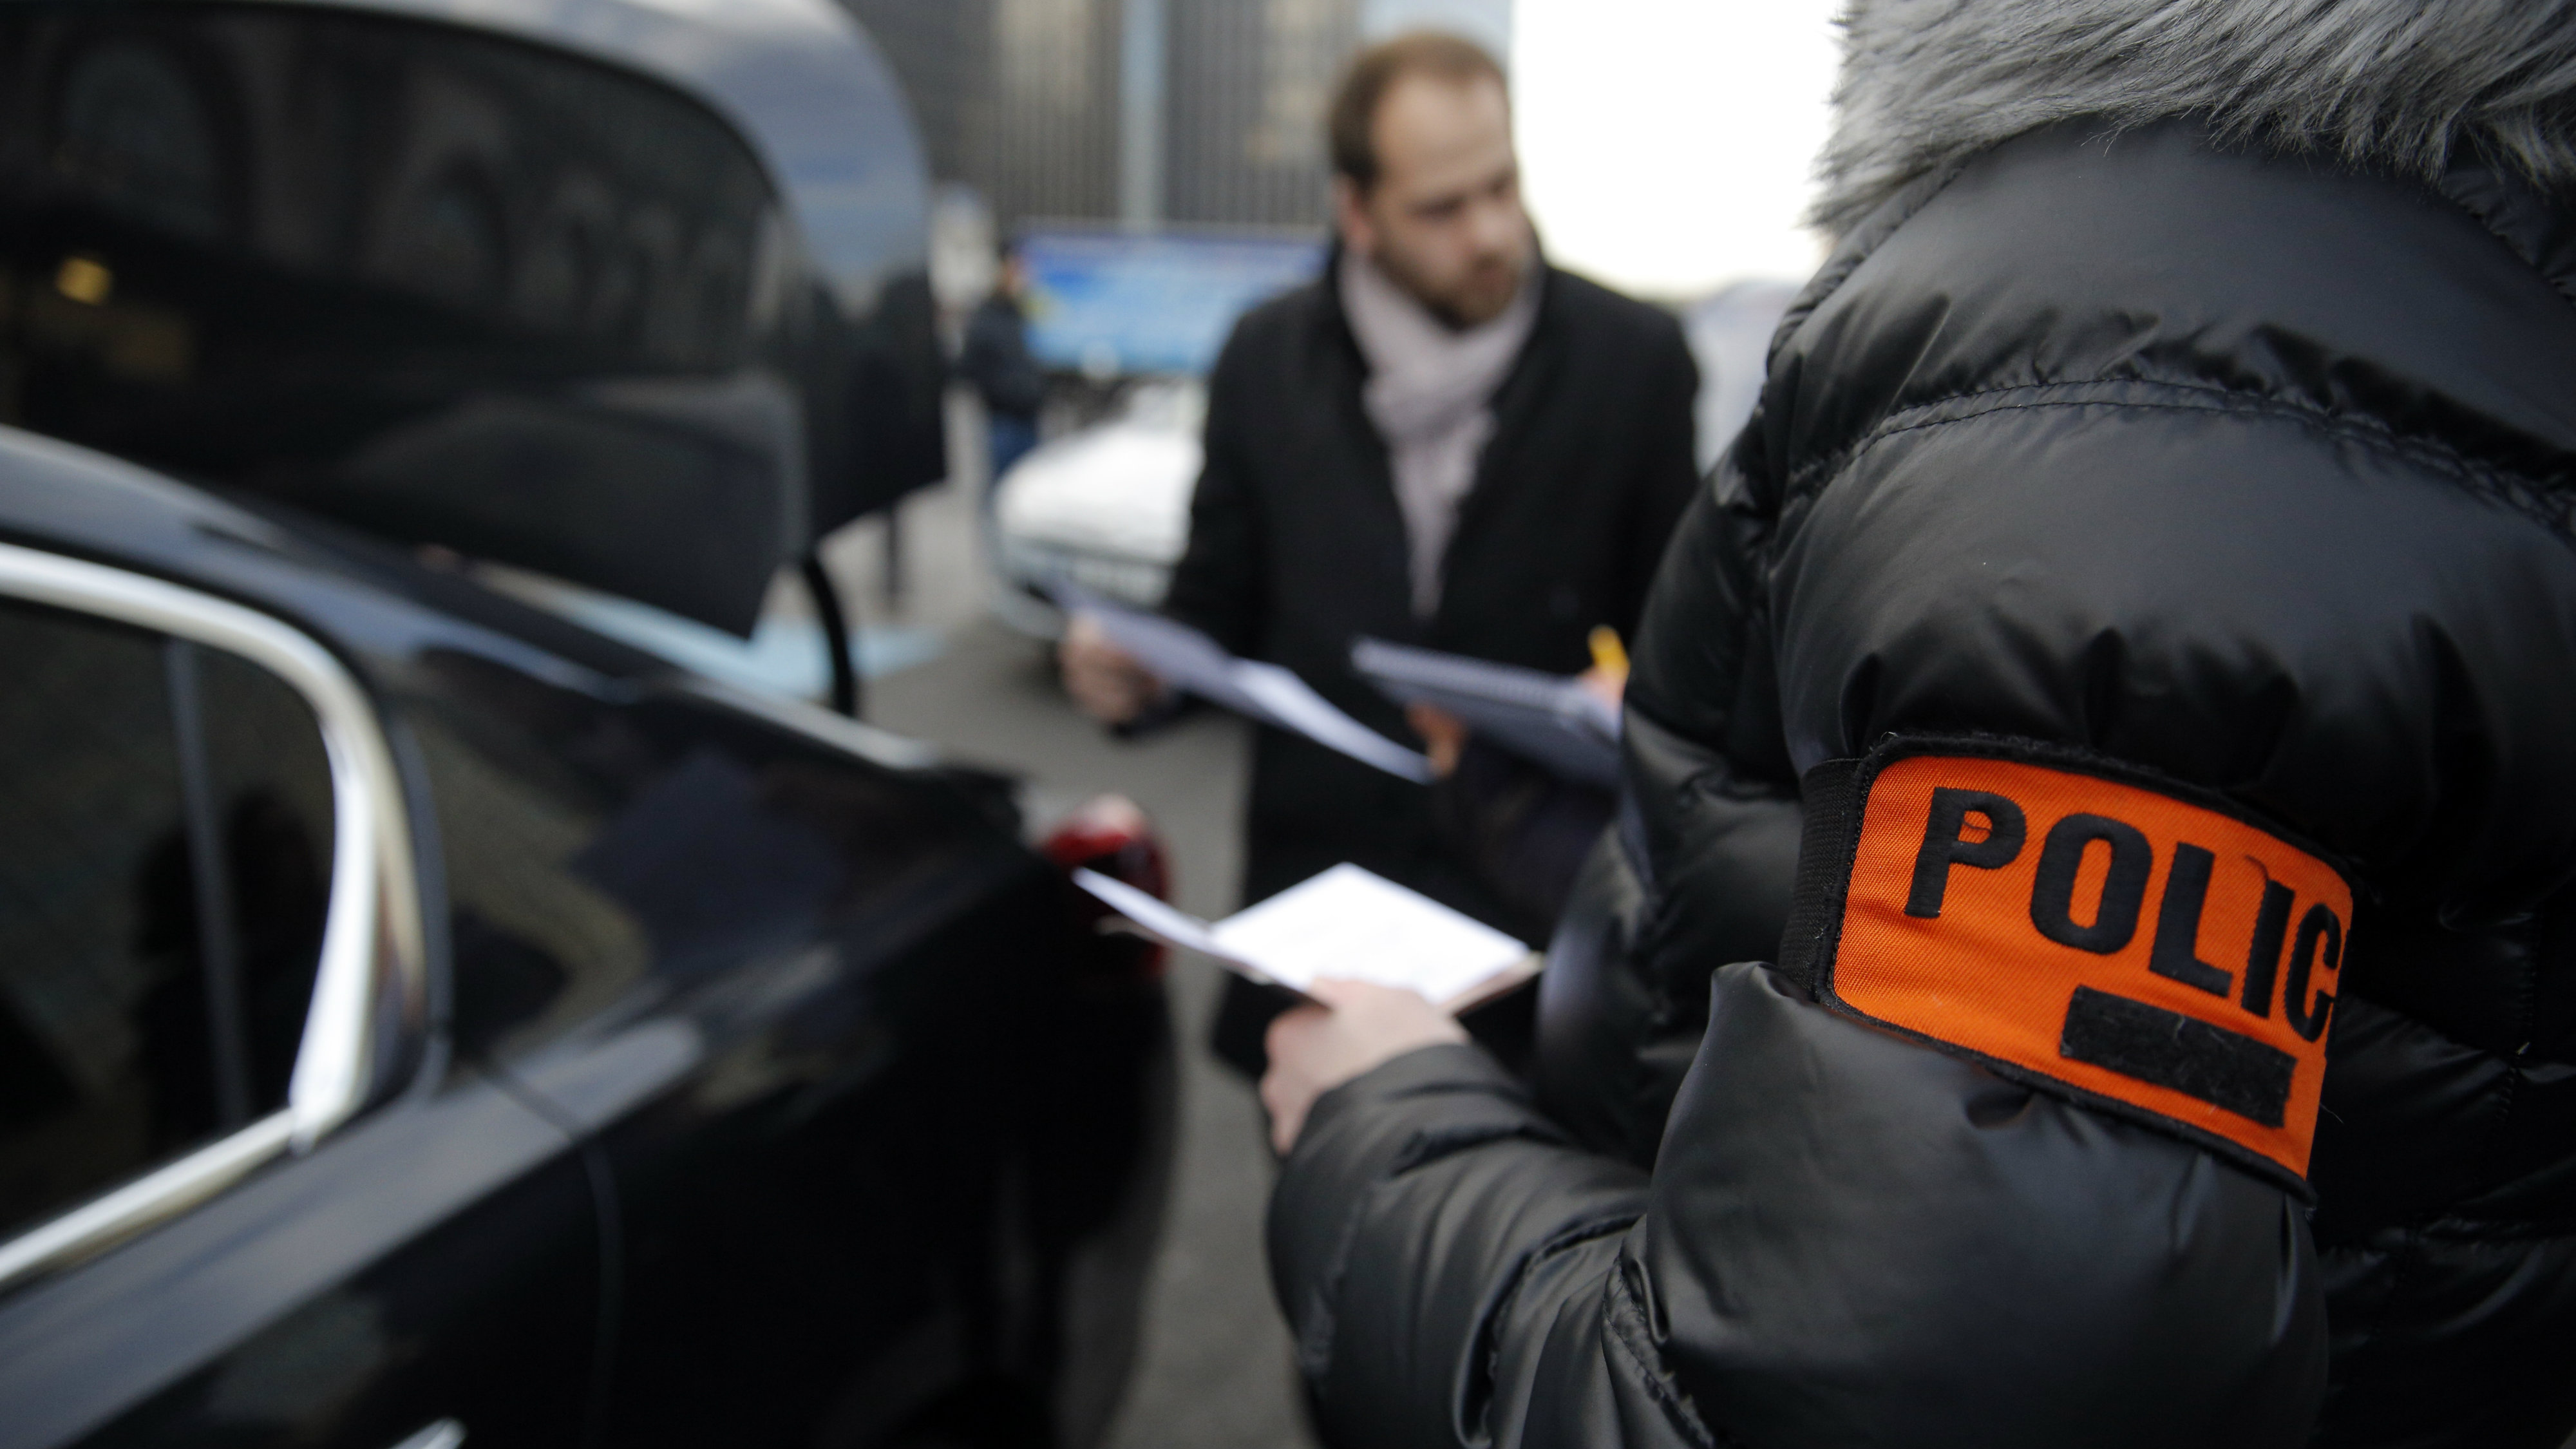 Plainclothes police officers check chauffeurs at the Paris' Gare de Lyon railway station, Thursday, Feb. 11, 2016. Chauffeurs claim they are victims of discrimination by the government, while taxi drivers complain for unfair competition from services such as Uber, during several protests in the recent weeks. (AP Photo/Christophe Ena)